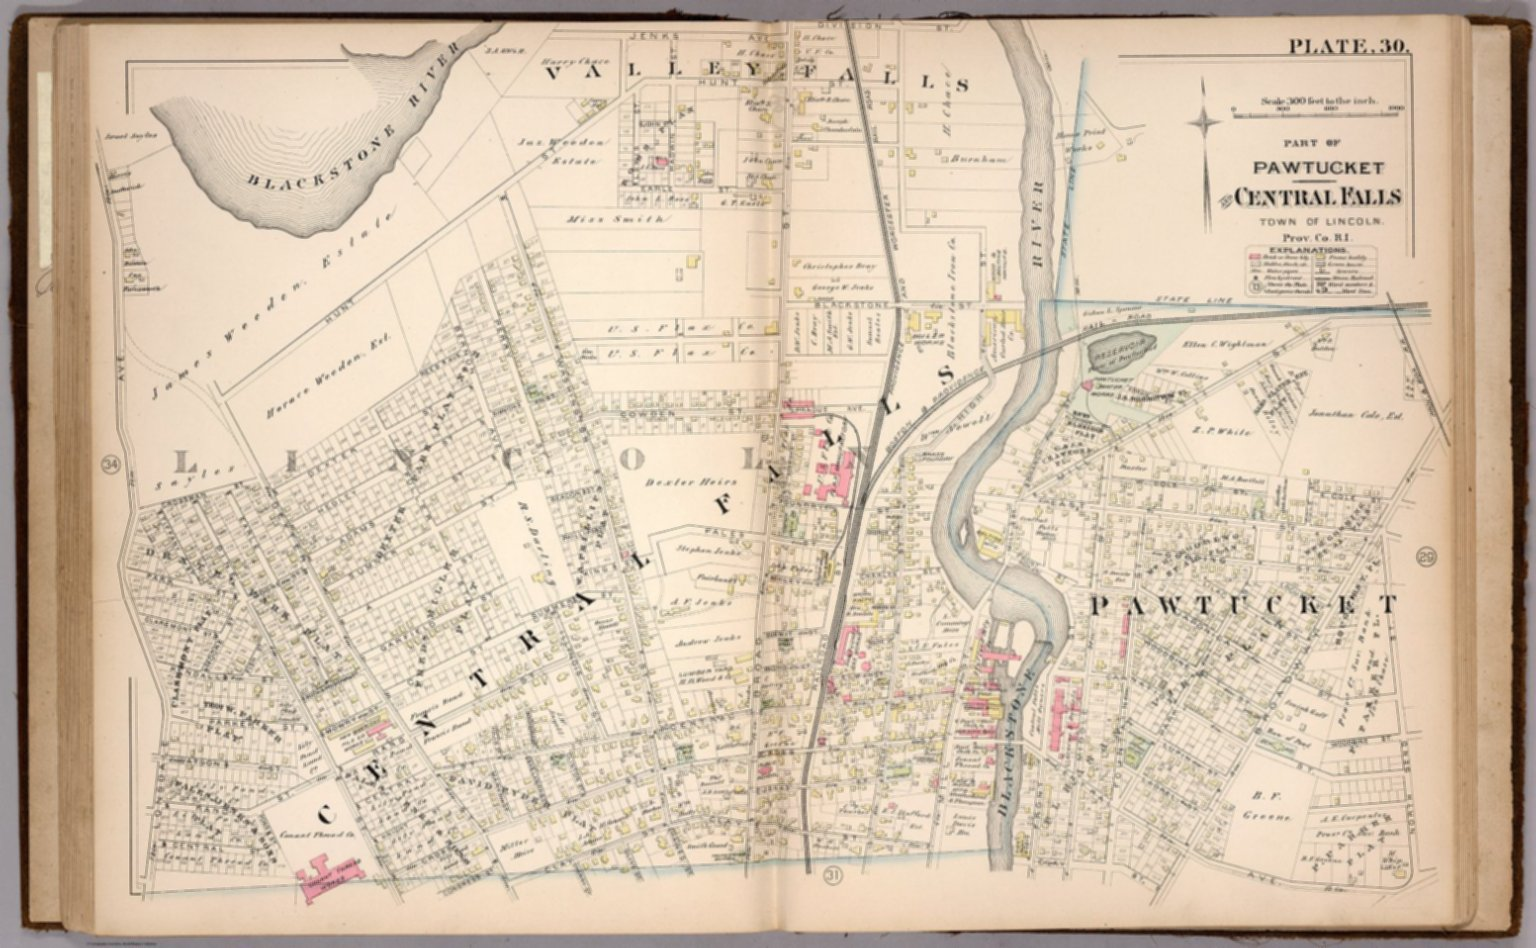 Plate 30 Part of Pawtucket and Central Falls Town of Lincoln Prov